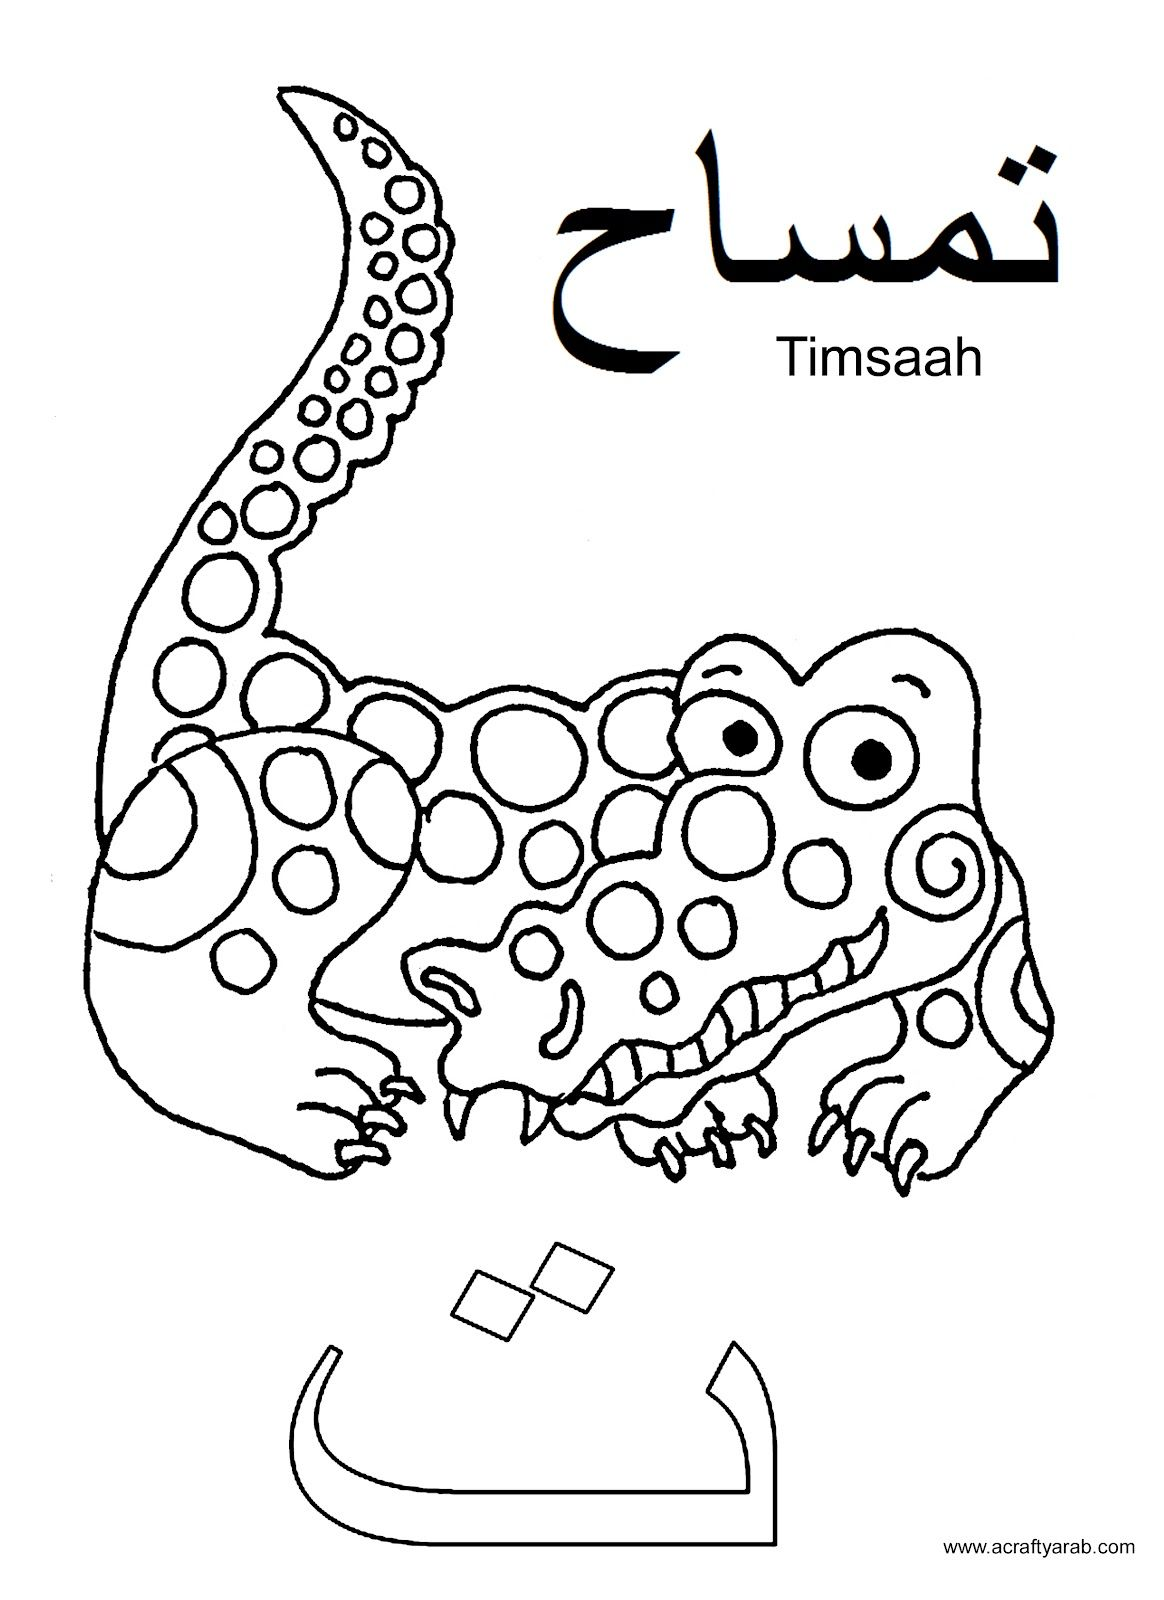 Arabic Alphabet Coloring Pages Ta Is For Timsaah